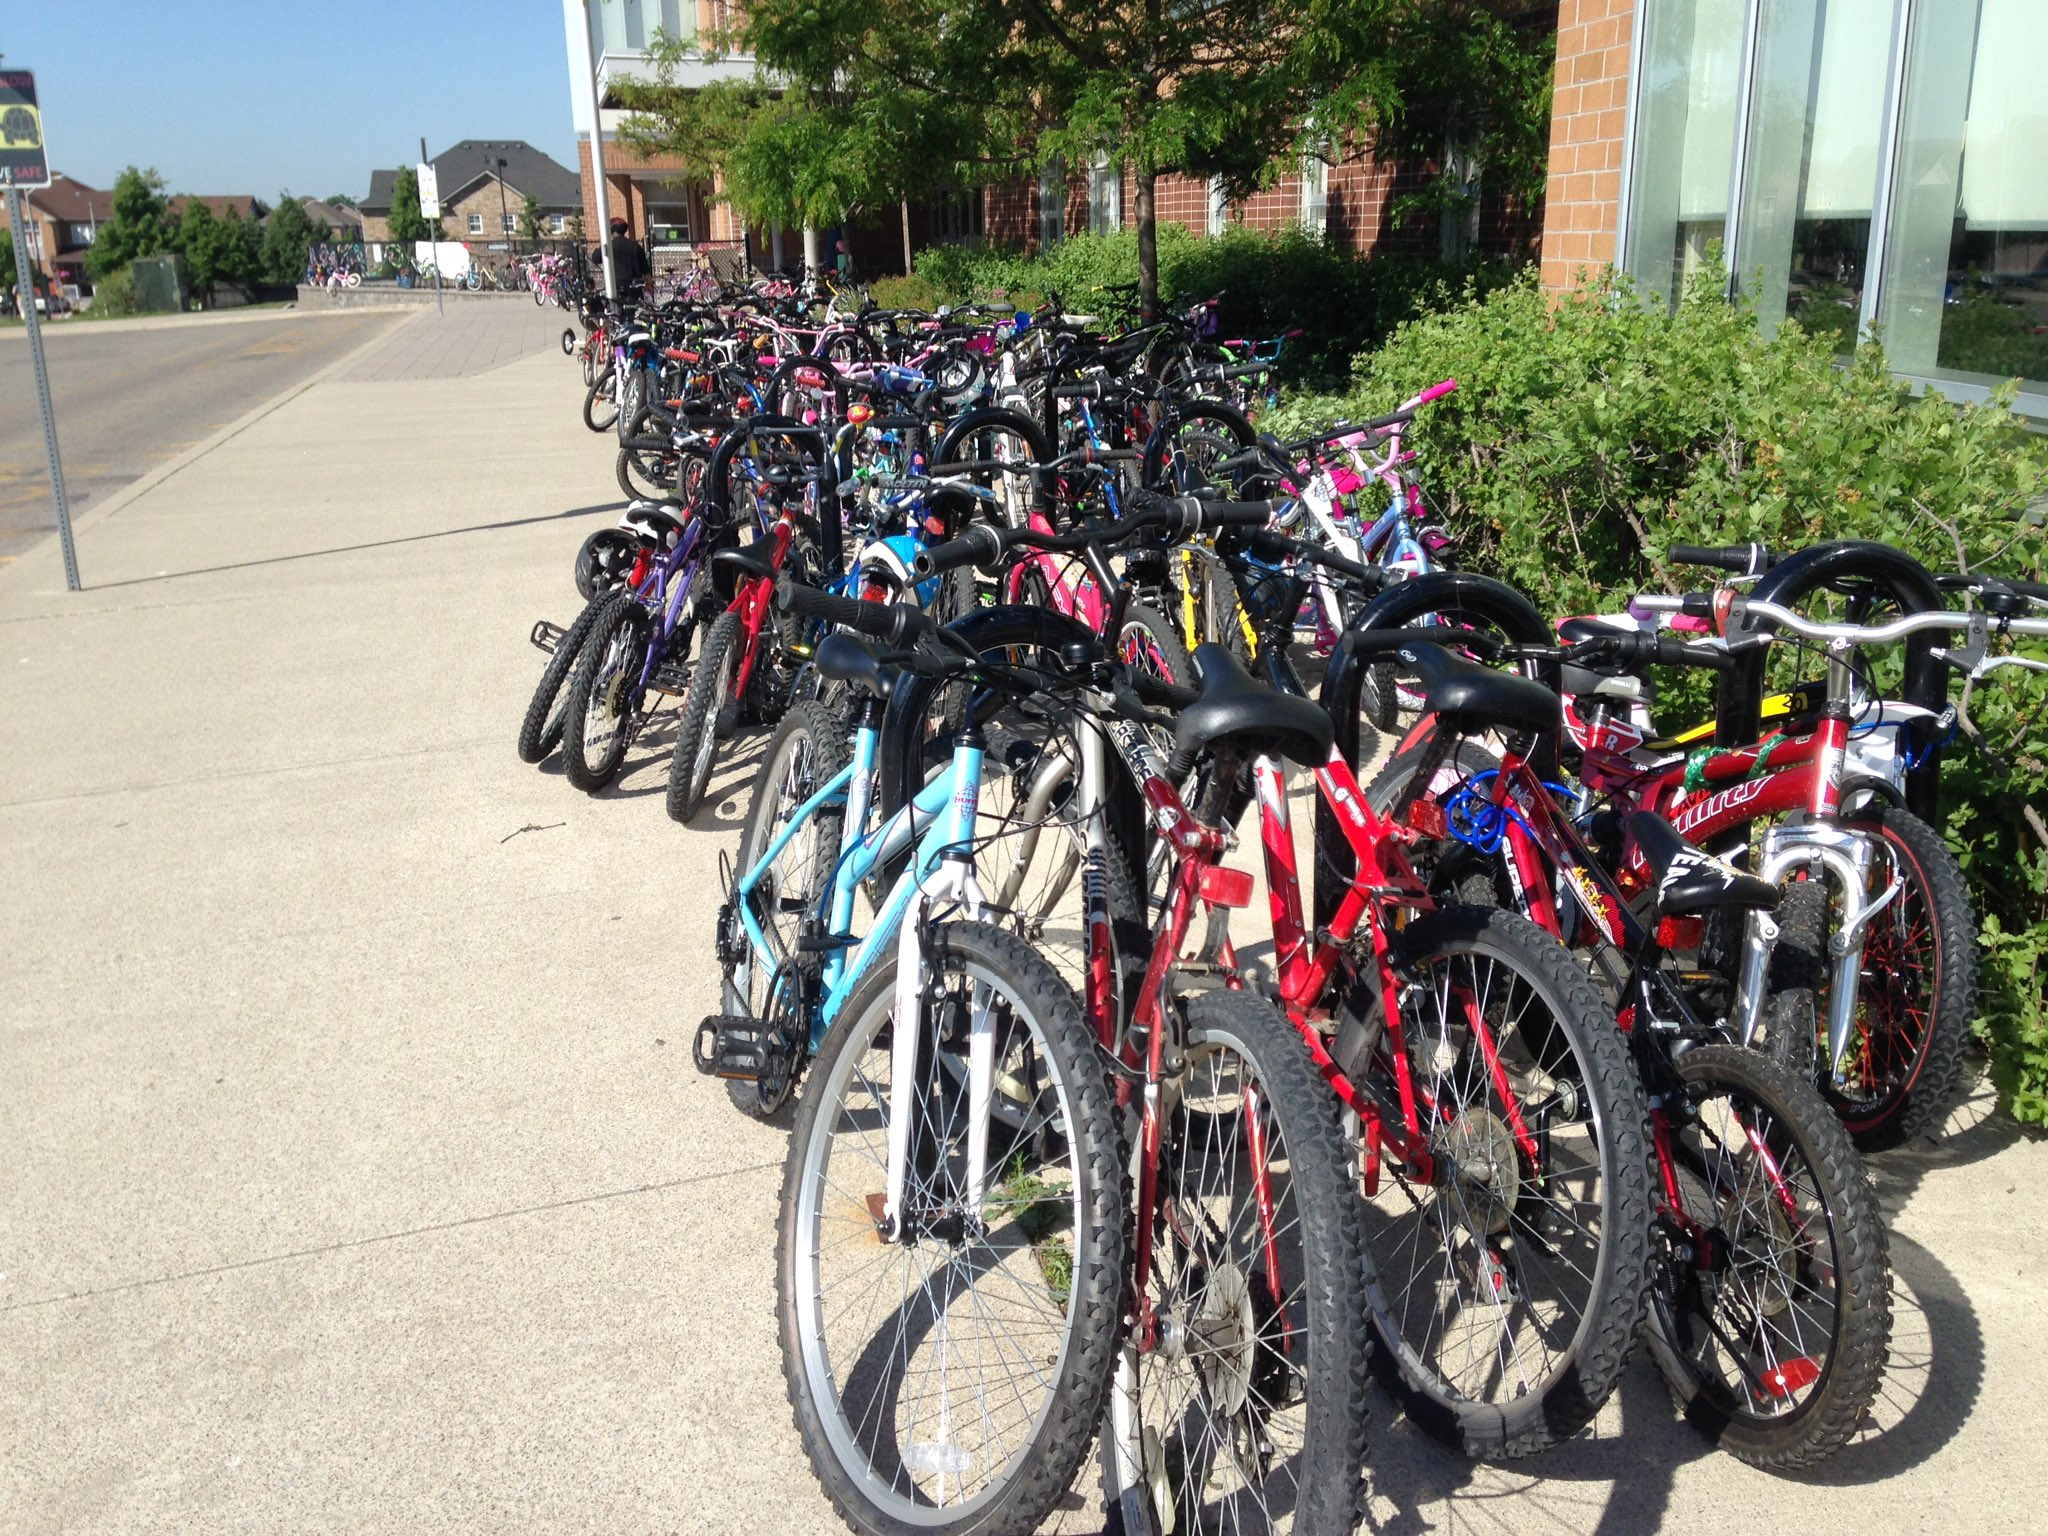 Bikes, bikes & more bikes! 135 on day 5 of #BikeToSchoolWeek.  Keep riding next week!! @PeelSchools https://t.co/ica3JcA2yF